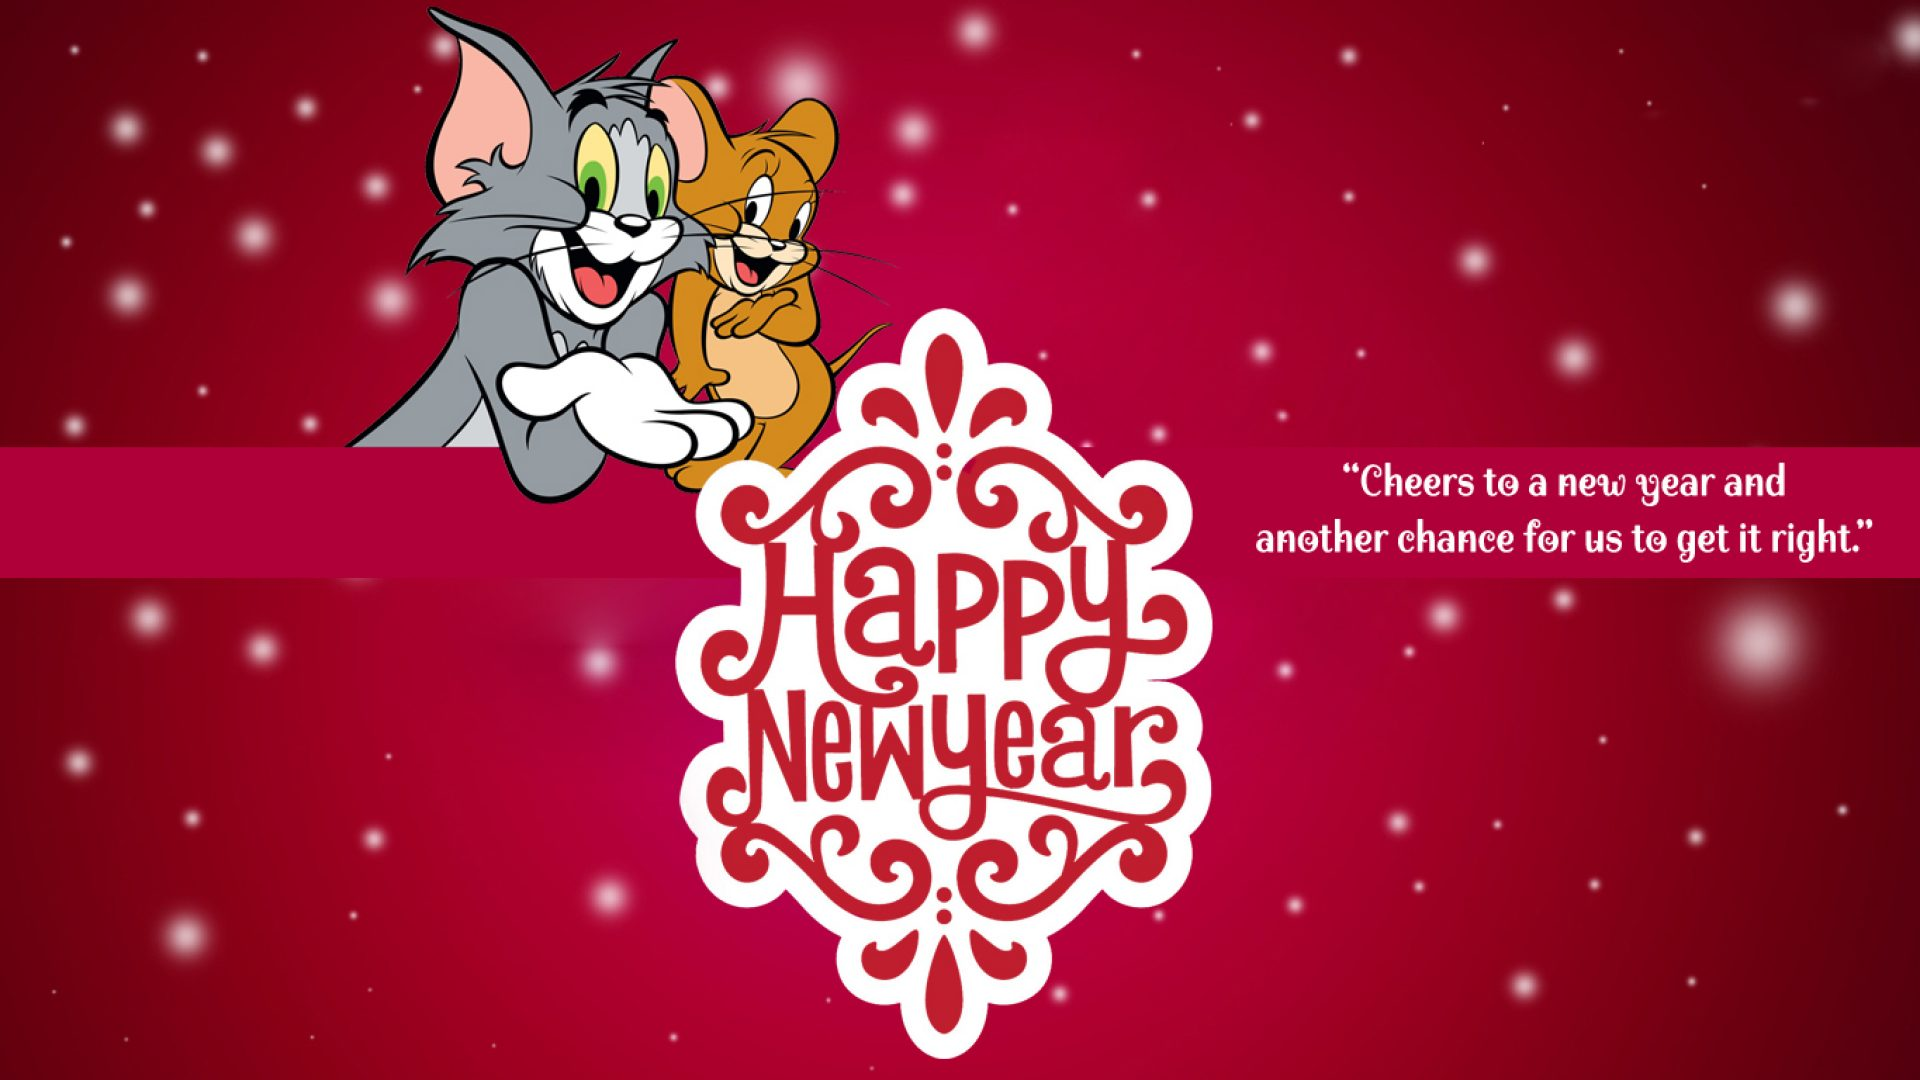 New Years Disney Cartoons Images Black And White Animated Wallpaper Wishes Festivals